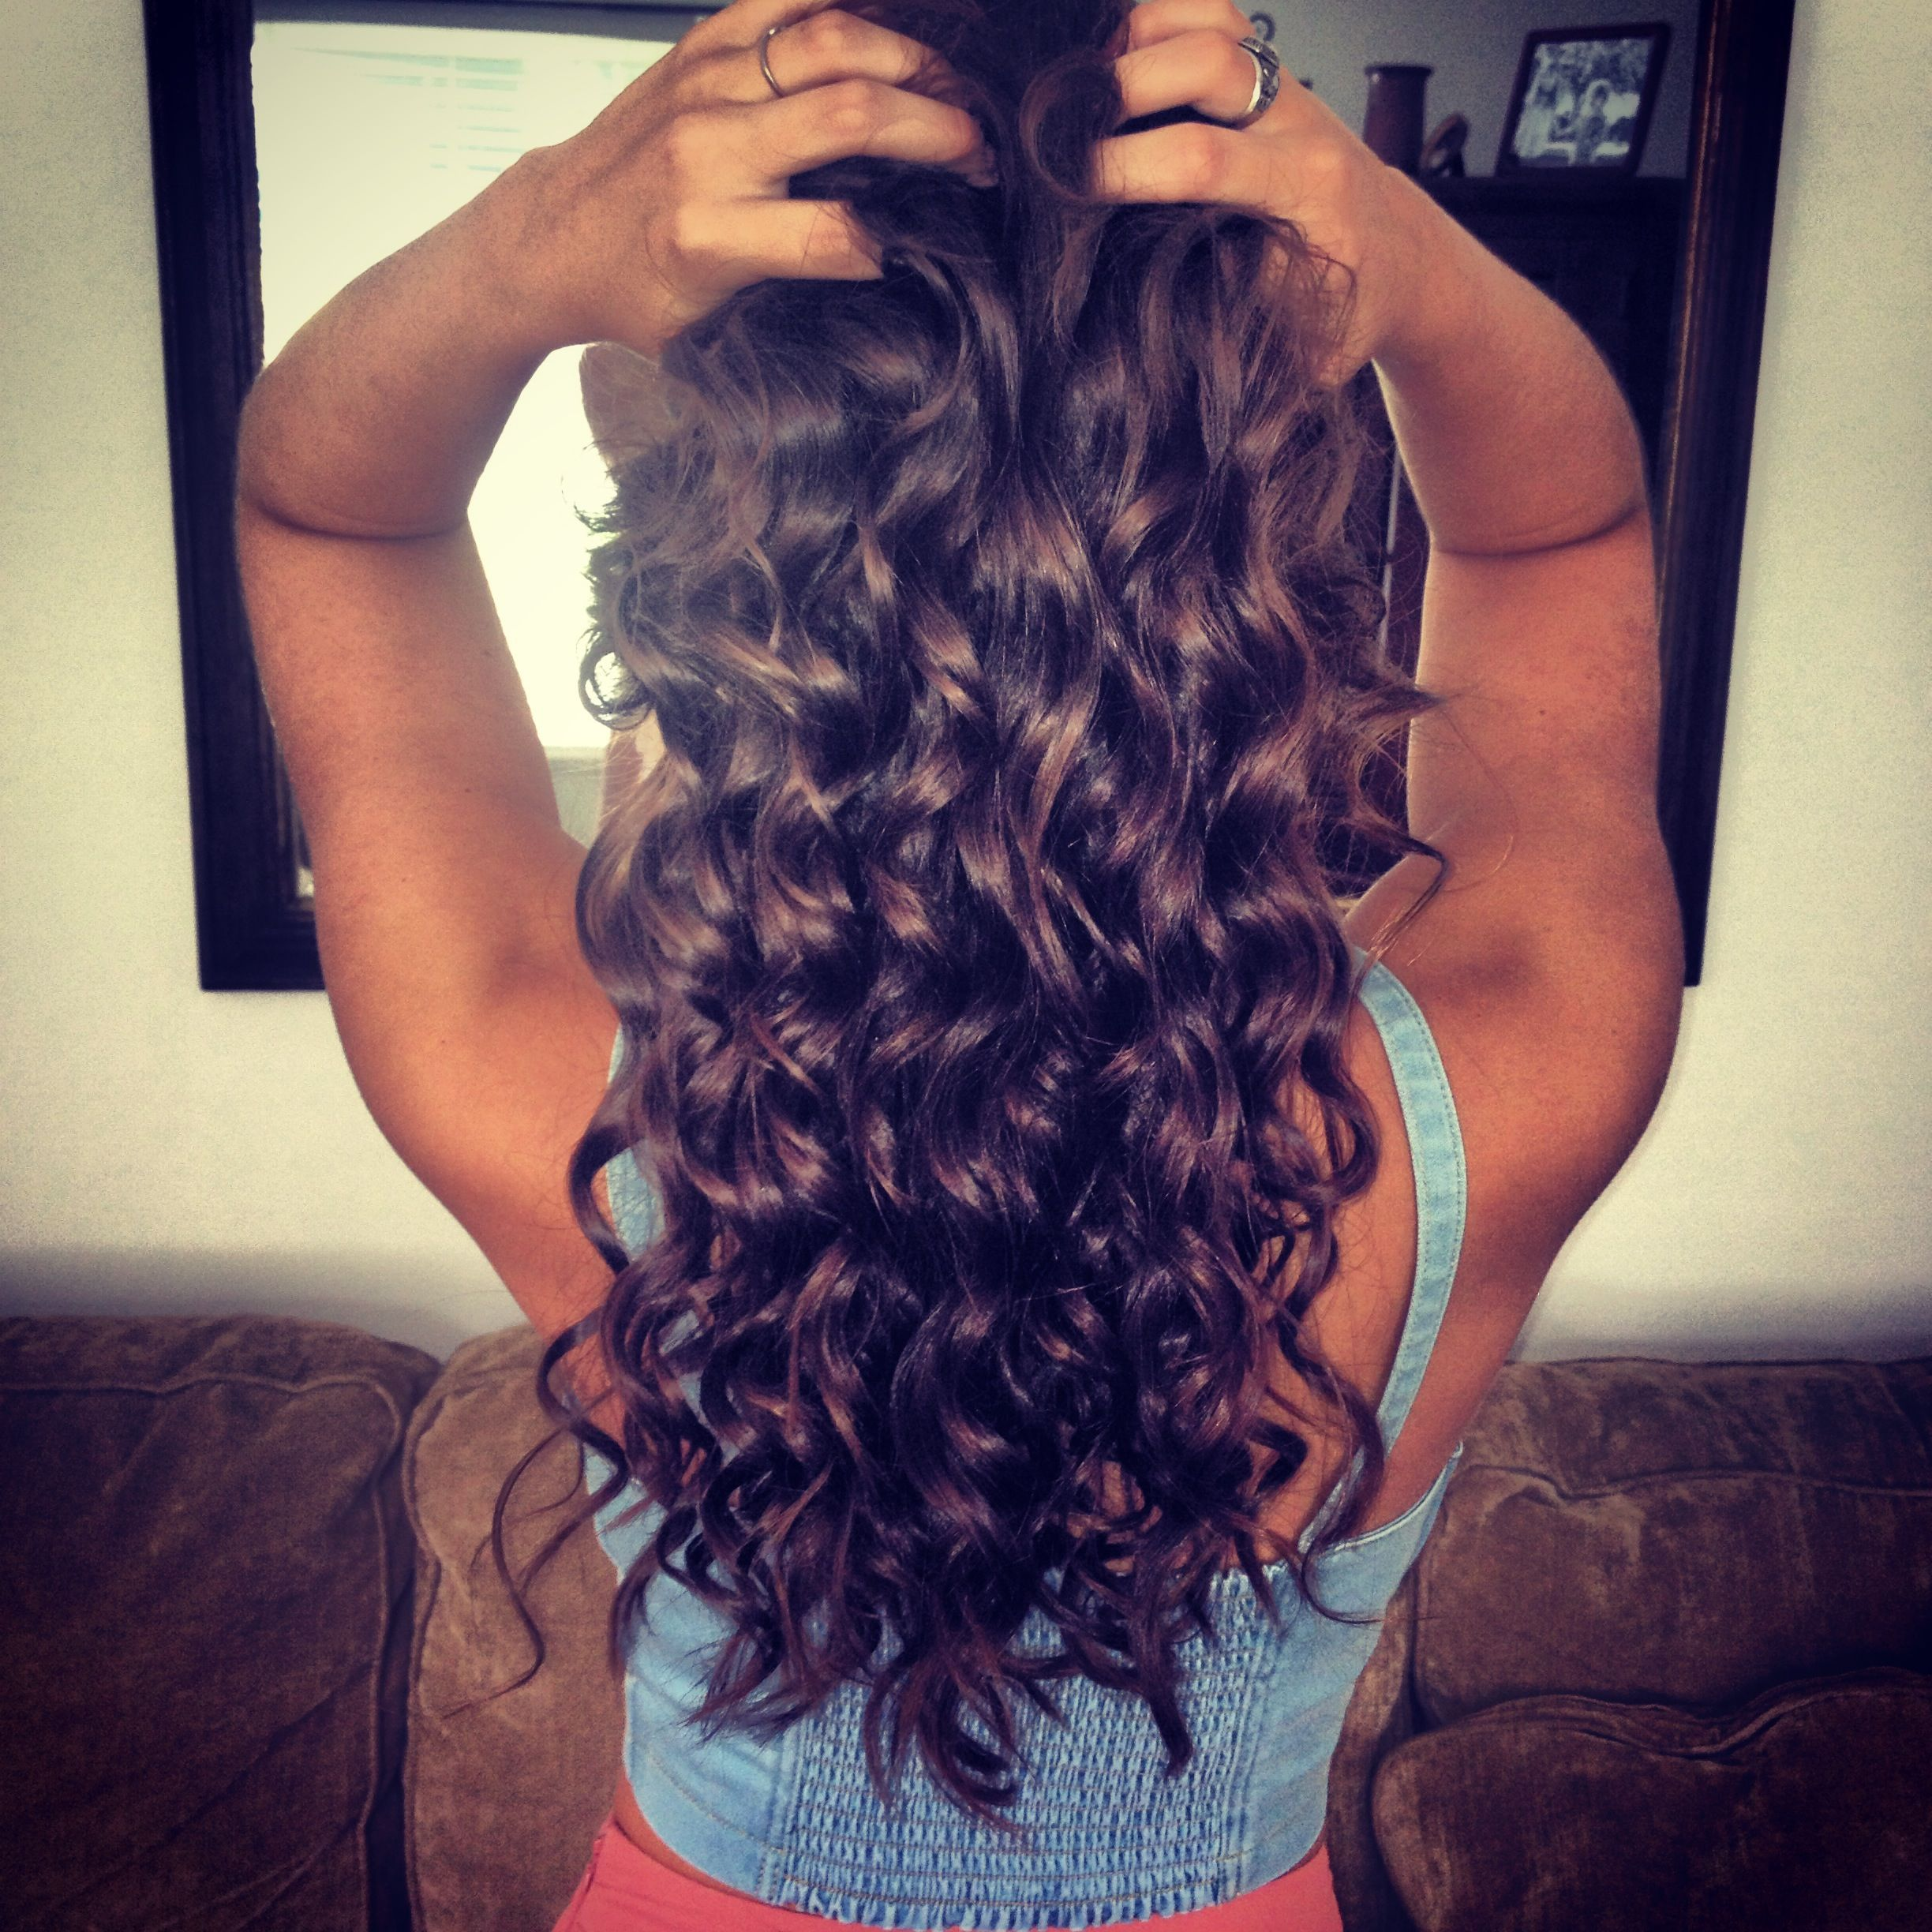 Curly hair from curling wand | The Hair | Pinterest